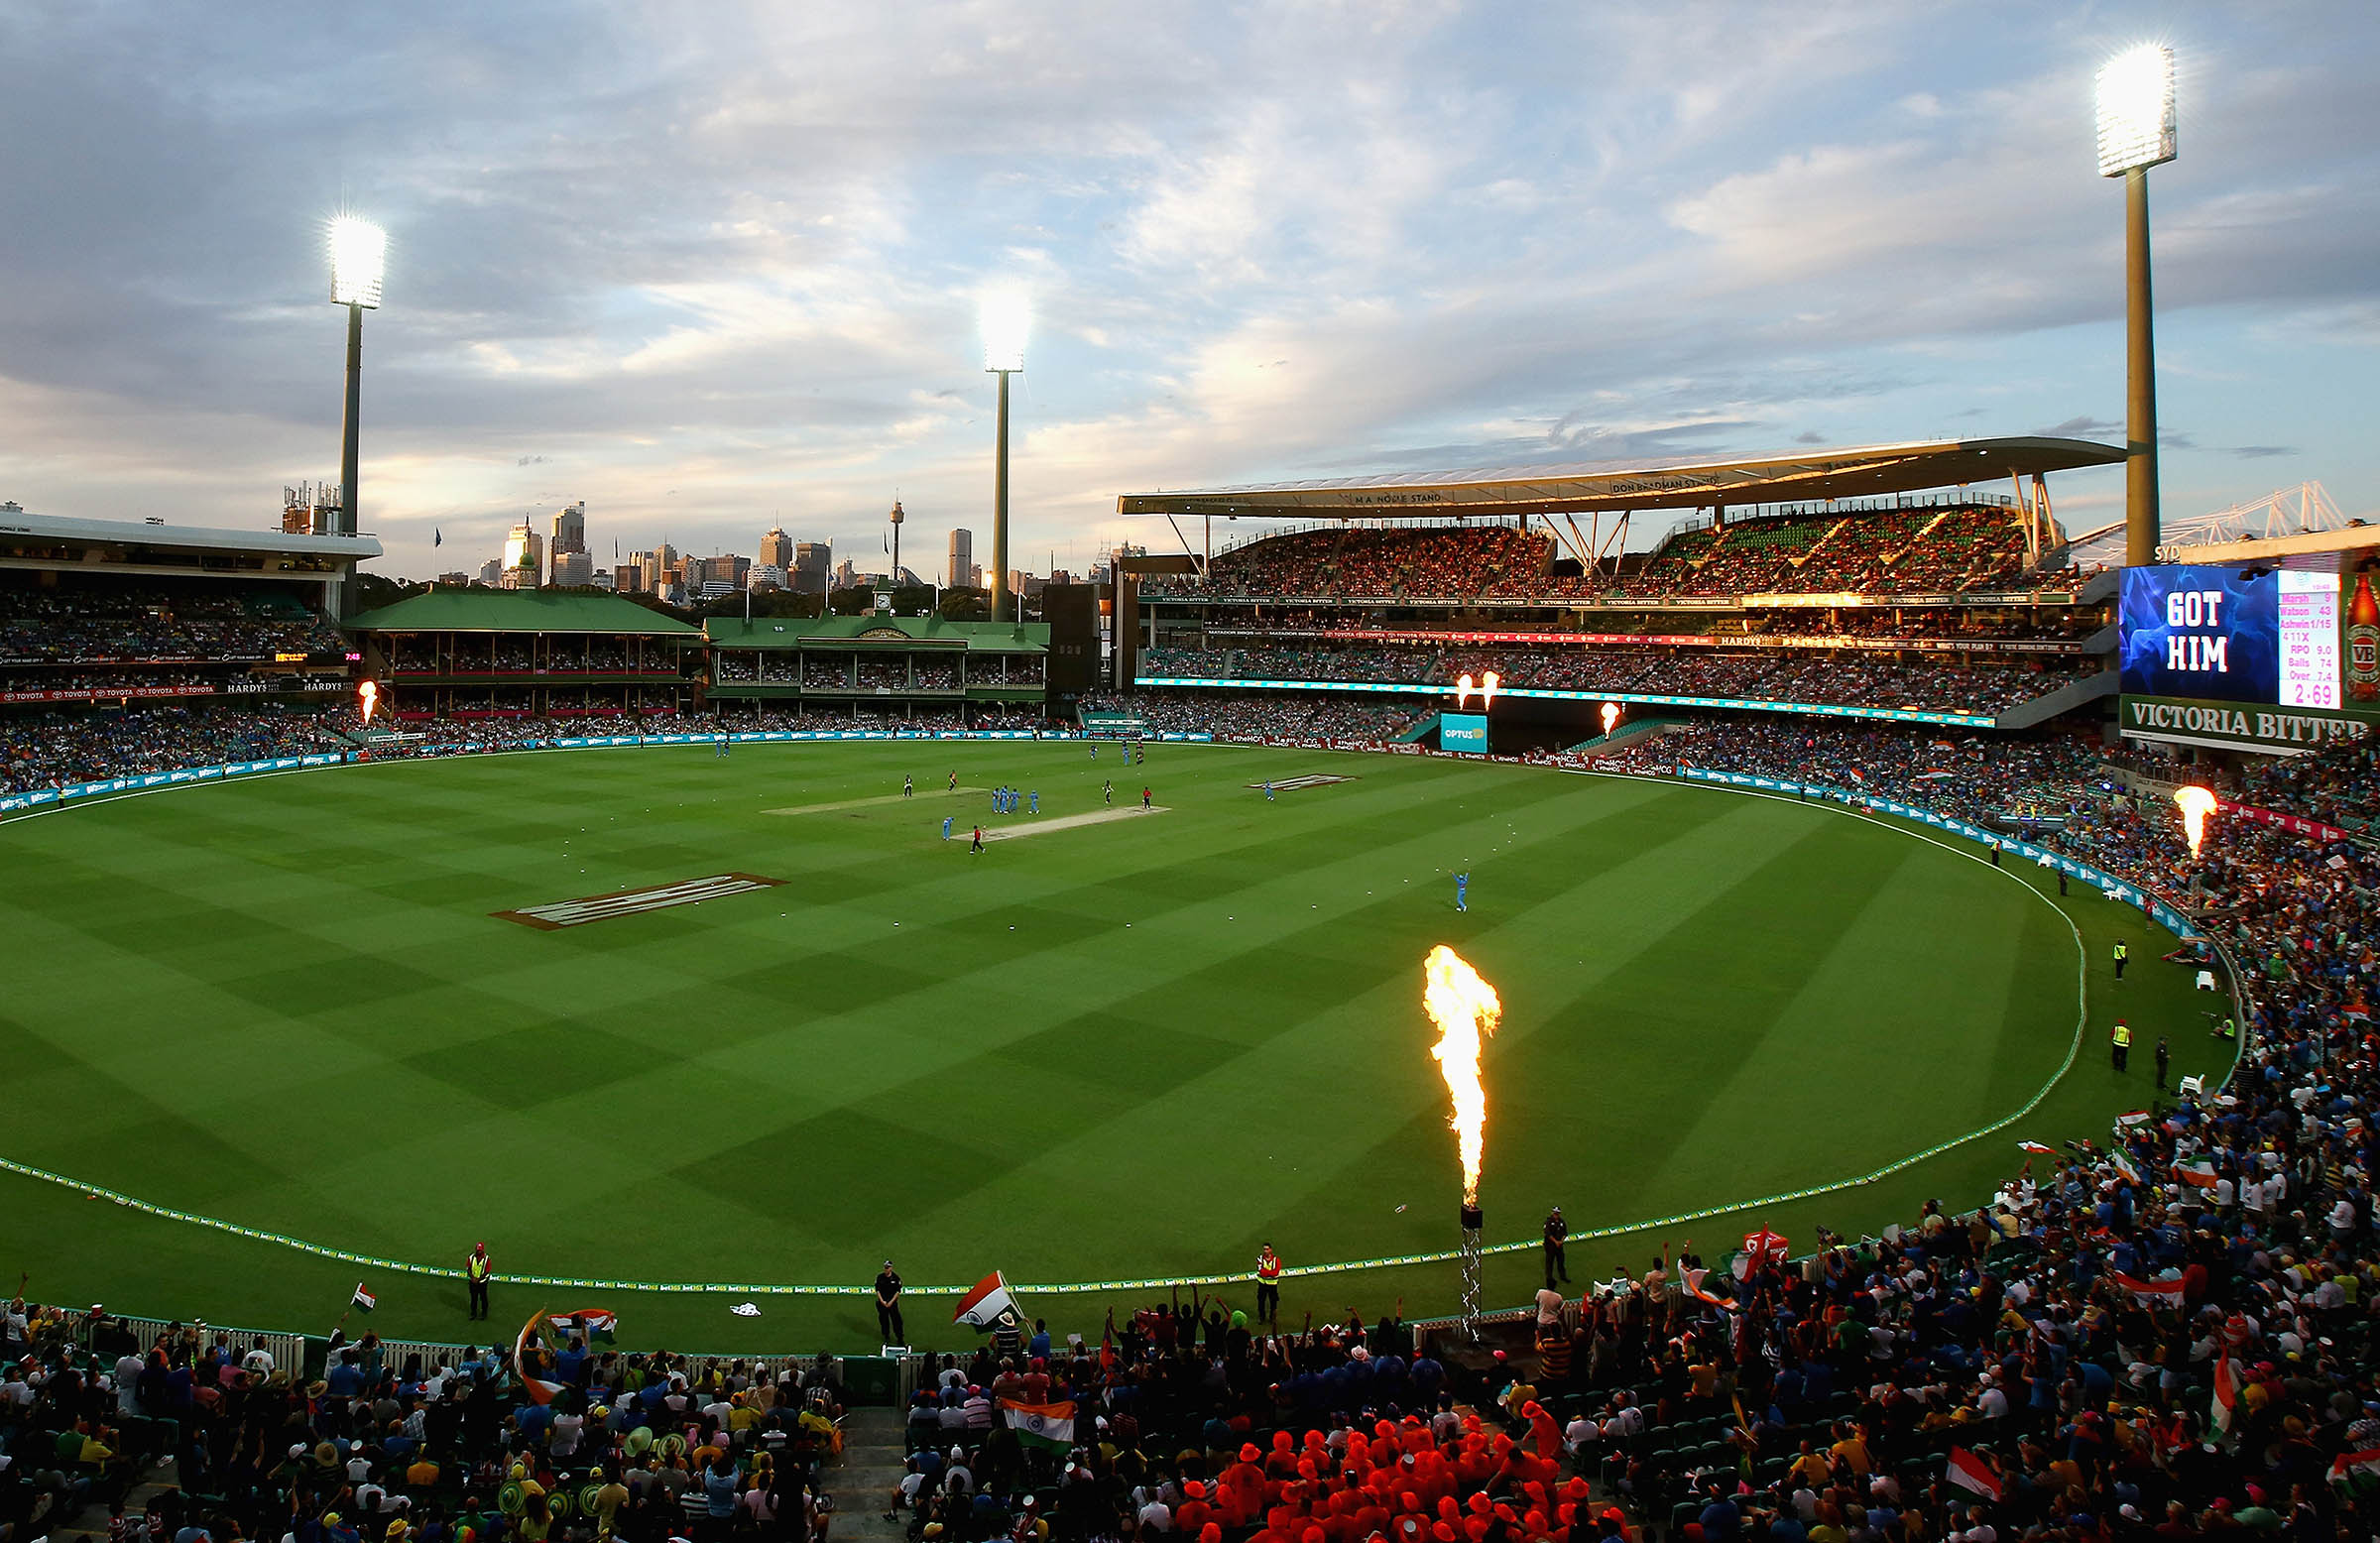 A crowd of 35,000 are expected for Sunday's game at the SCG // Getty